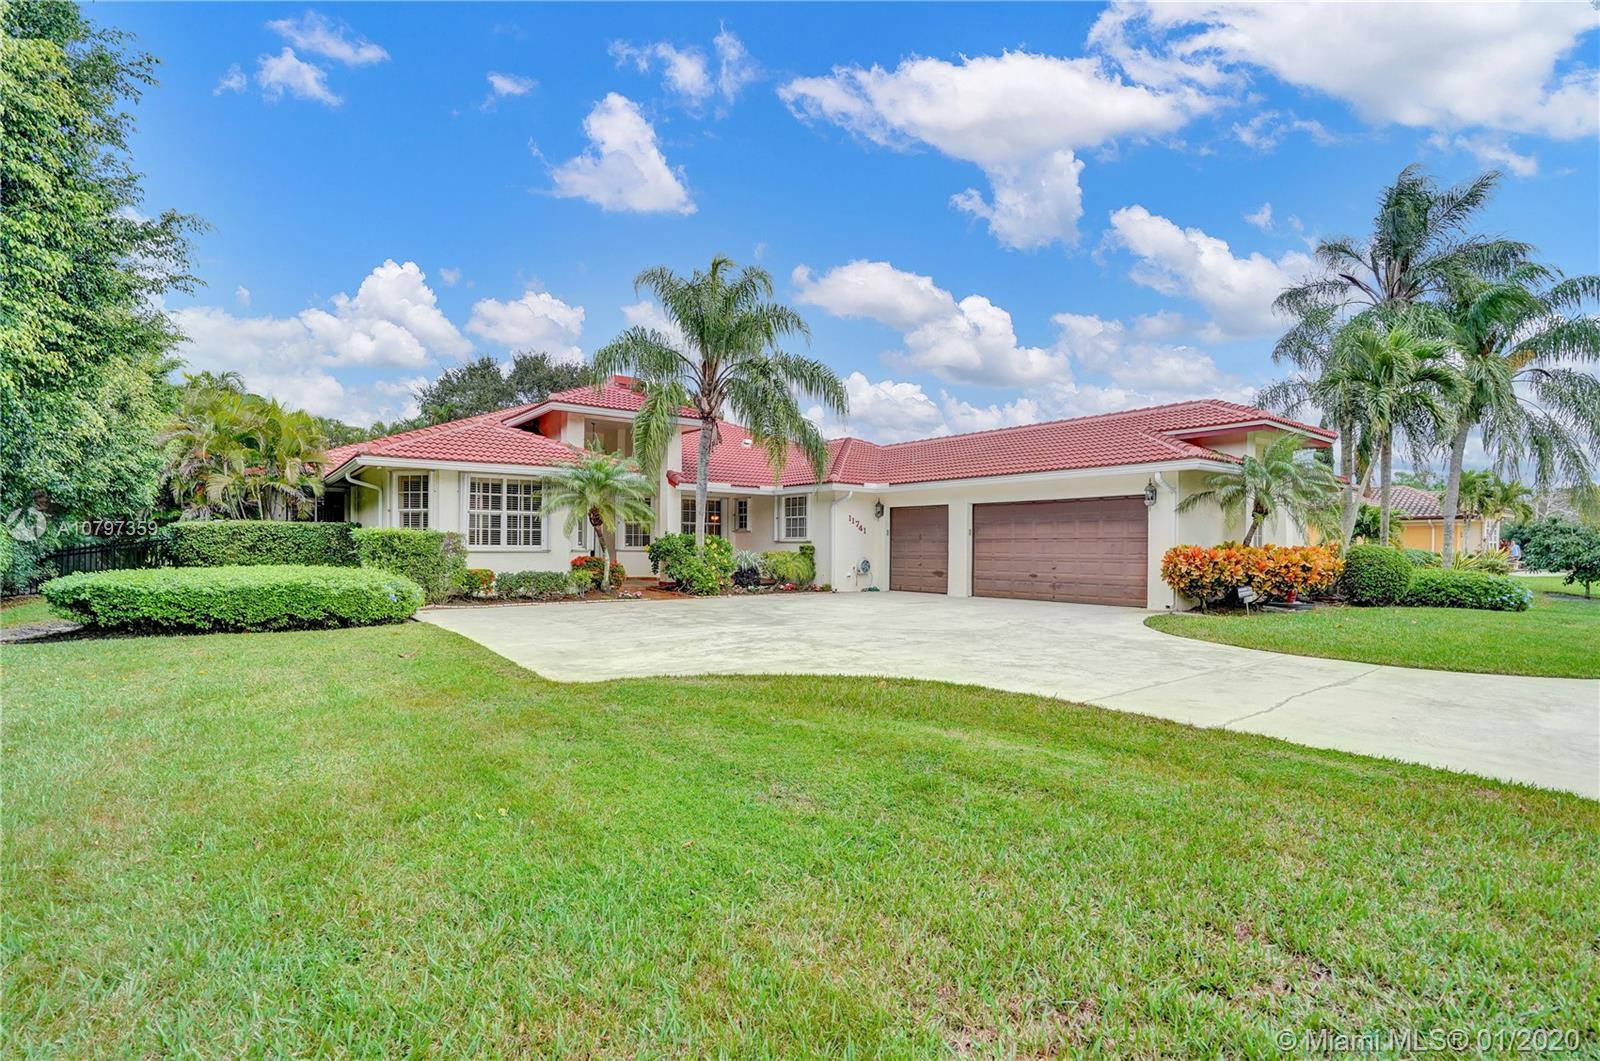 Plantation Homes For Sale – South Florida Real Estate on san antonio ranch home, tampa ranch home, ocala ranch home, florida ranch home, rolling hills ranch home, key west ranch home, estate ranch home, fort lauderdale ranch home,